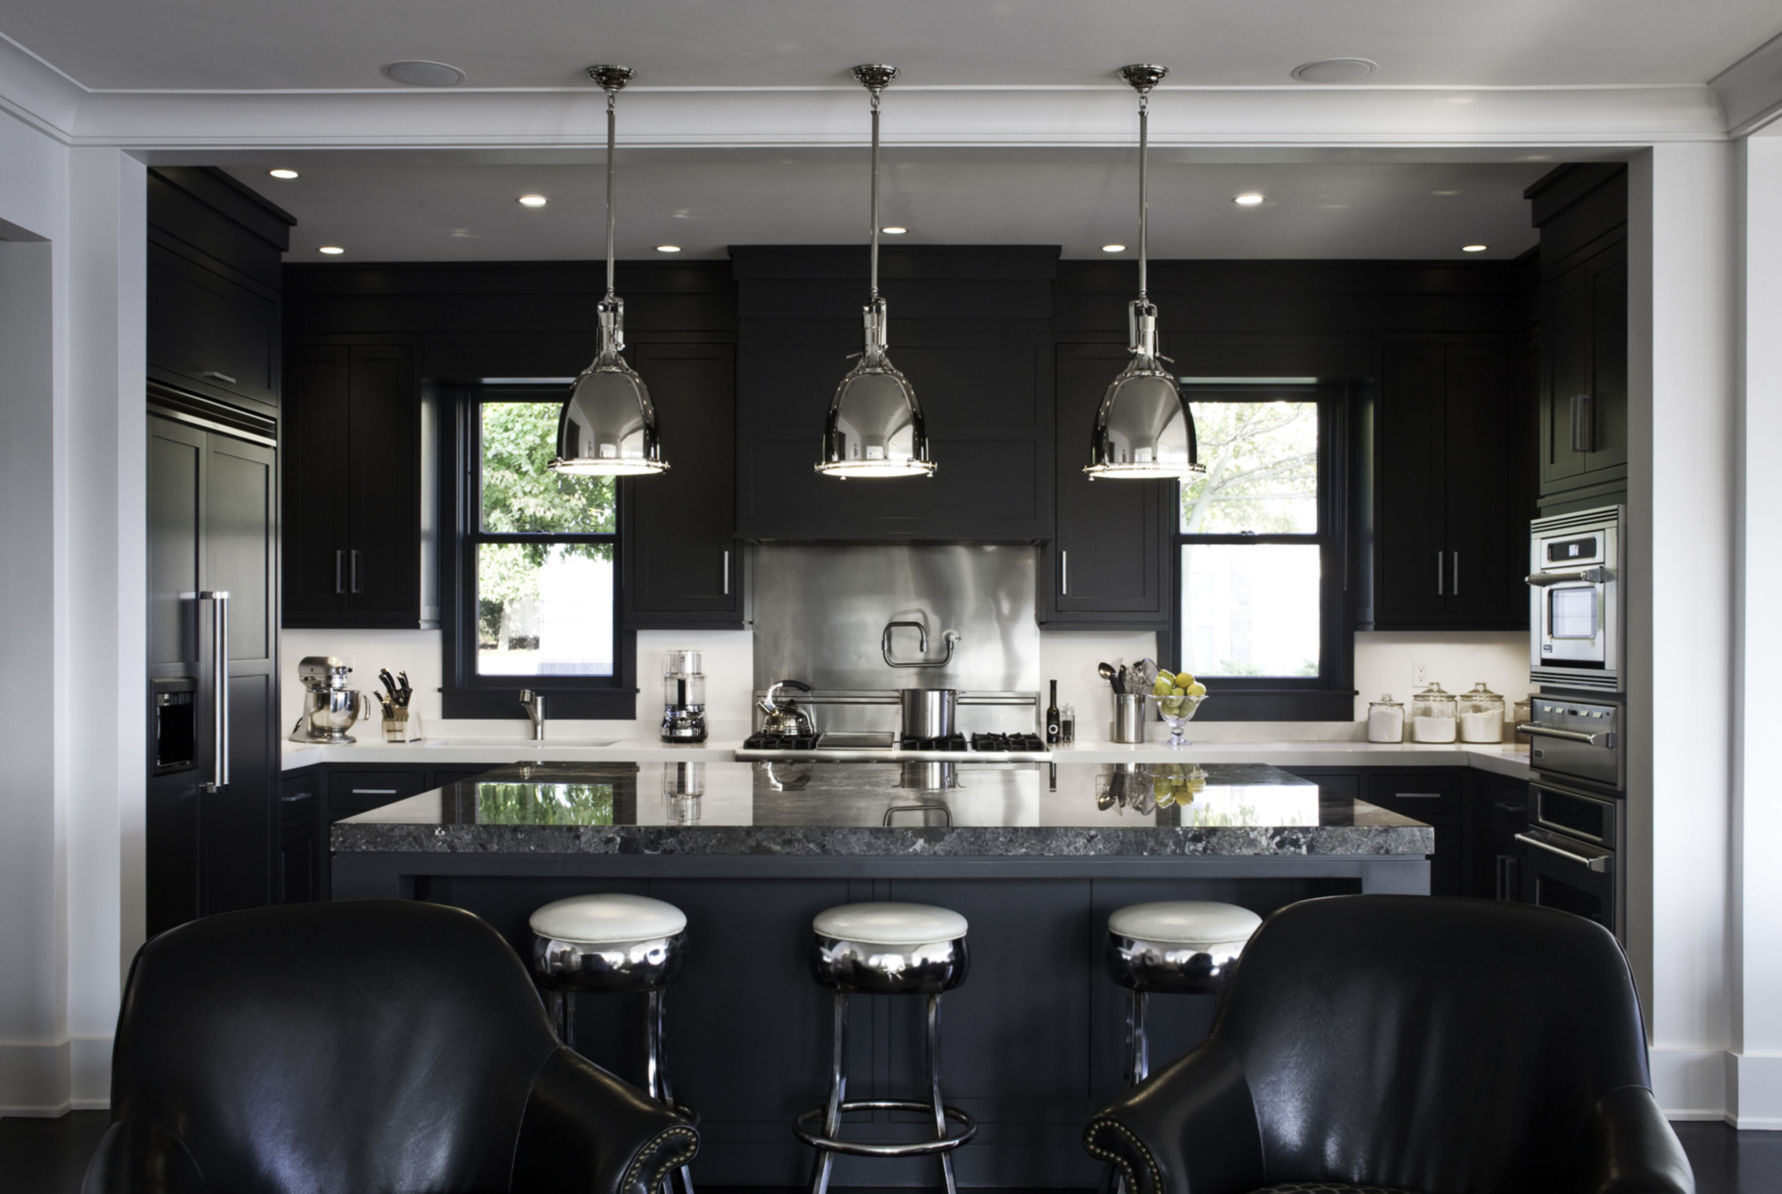 Black Design For Kitchen 10 Kitchens With Black Appliances In Trending Design Ideas For Your